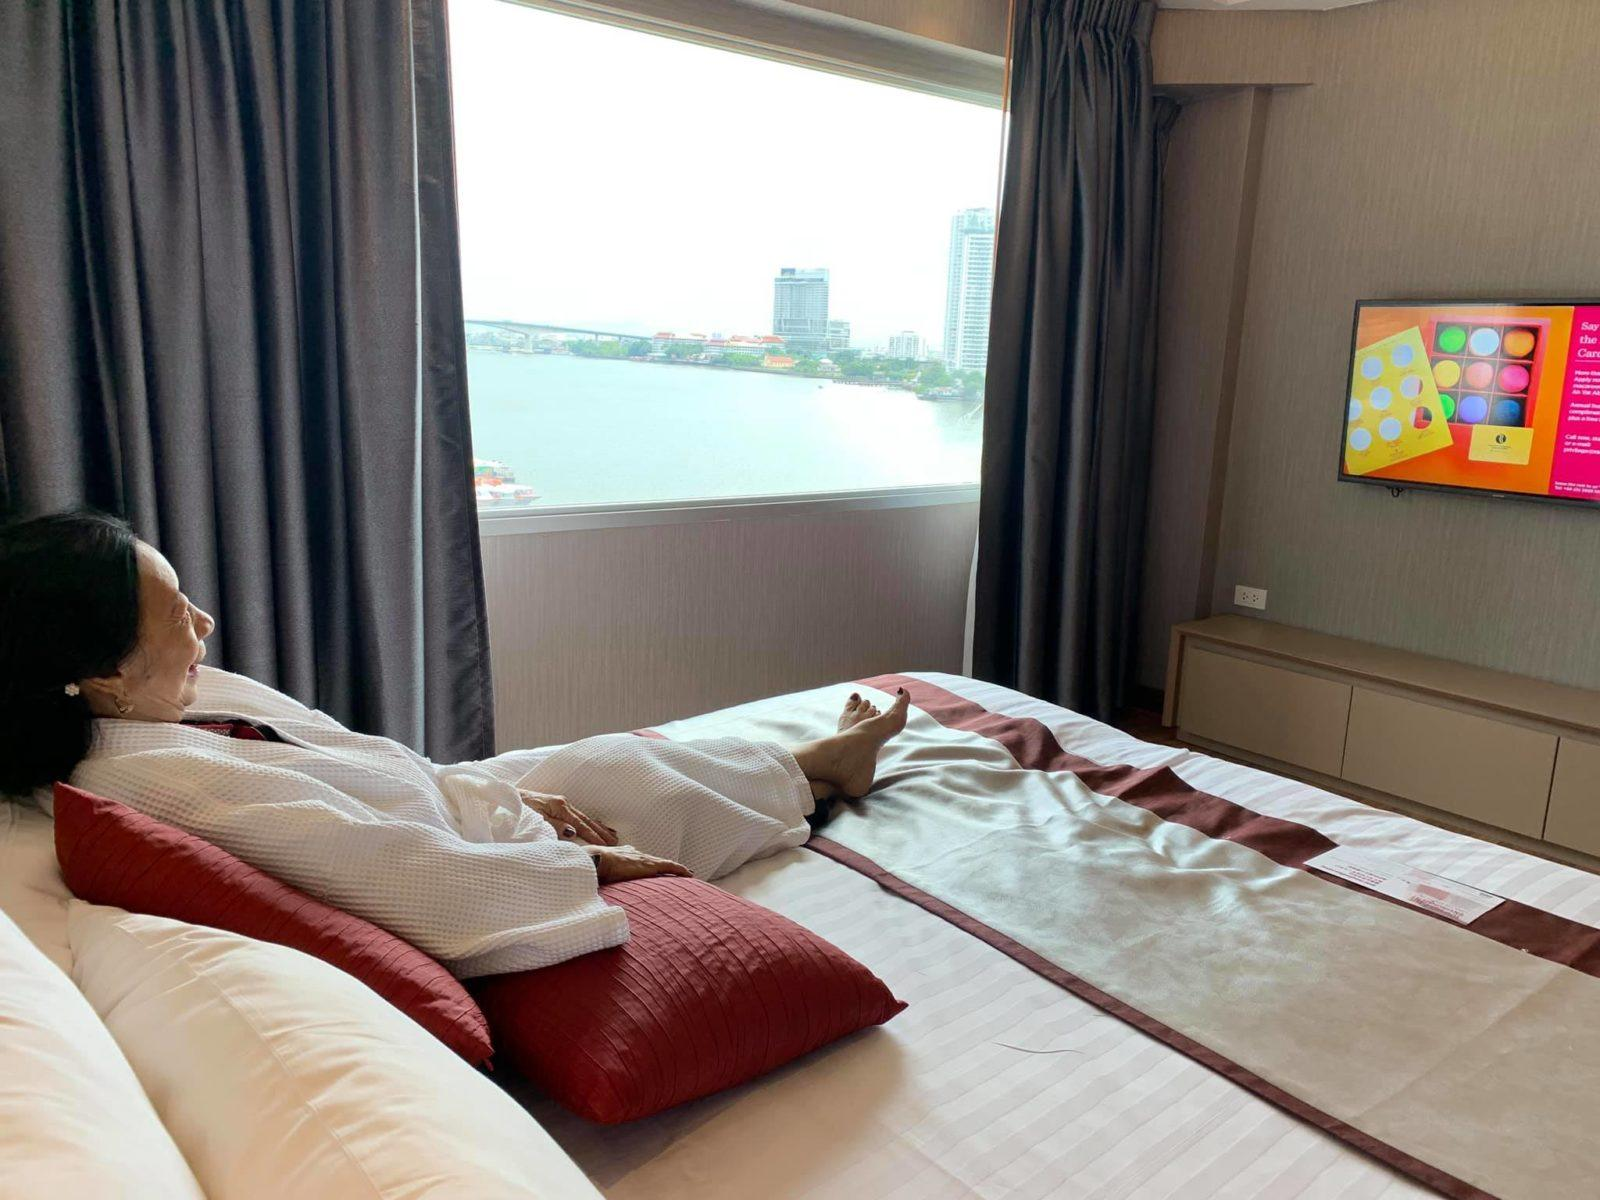 Our Luxurious Staycation At Ramada Plaza In Bangkok And Our Tour With Tinggly Experiences27